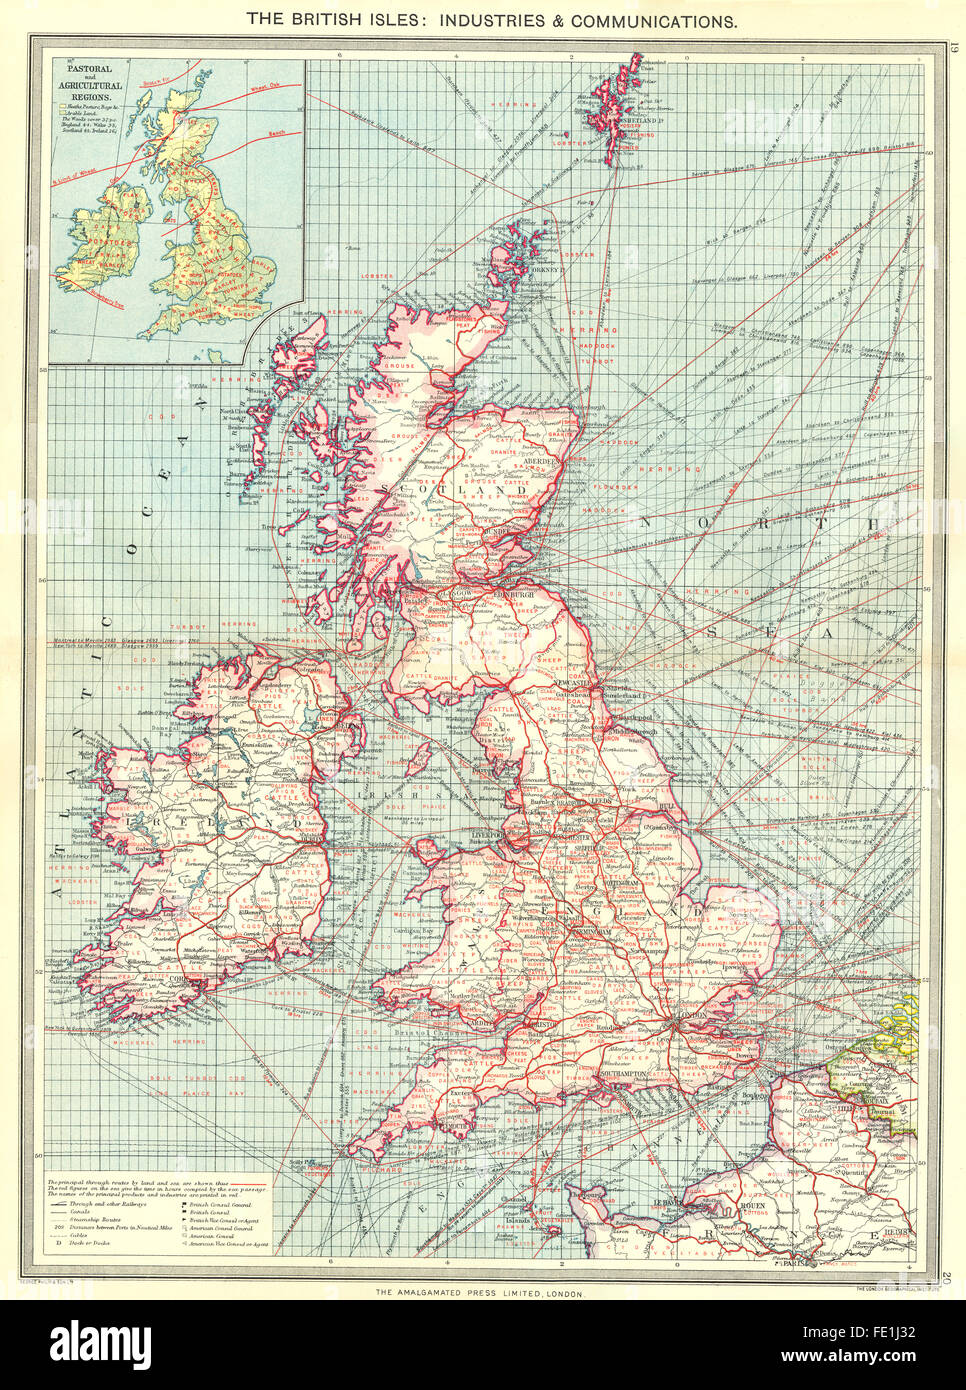 BRITISH ISLES: Industry & Communication; Pastoral & agricultural, 1907 old map - Stock Image